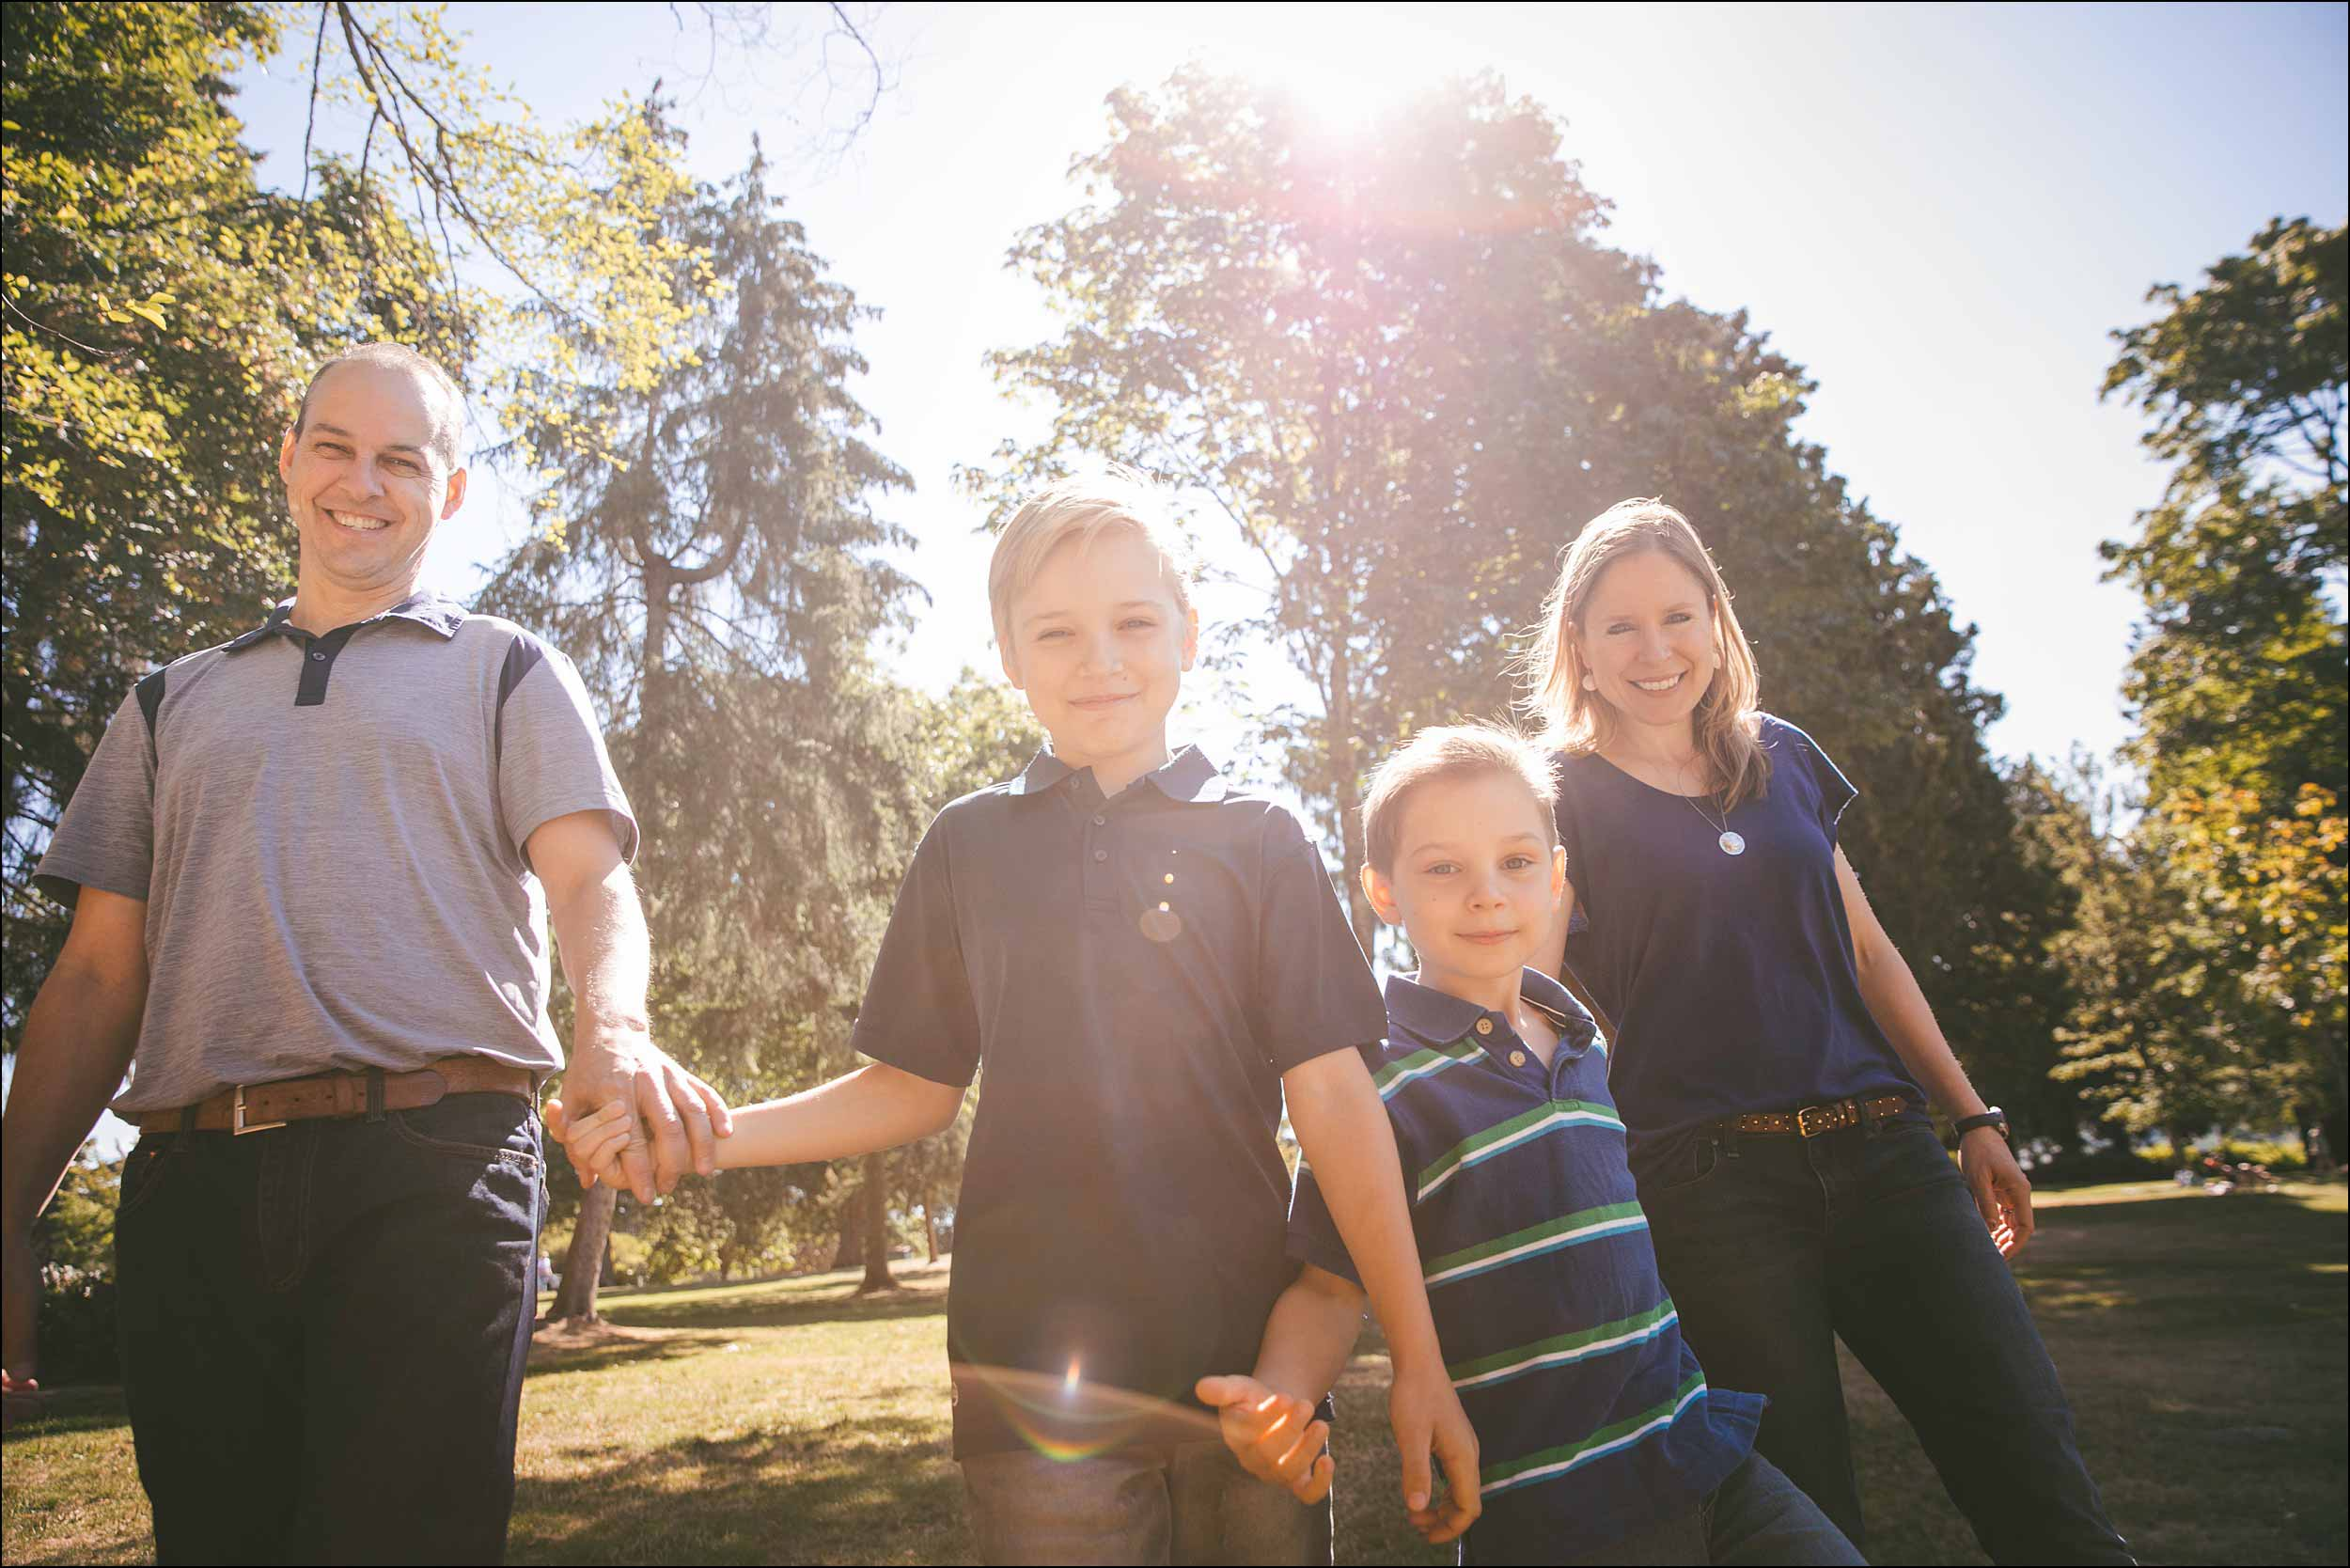 North Vancouver family photo session in a forest.